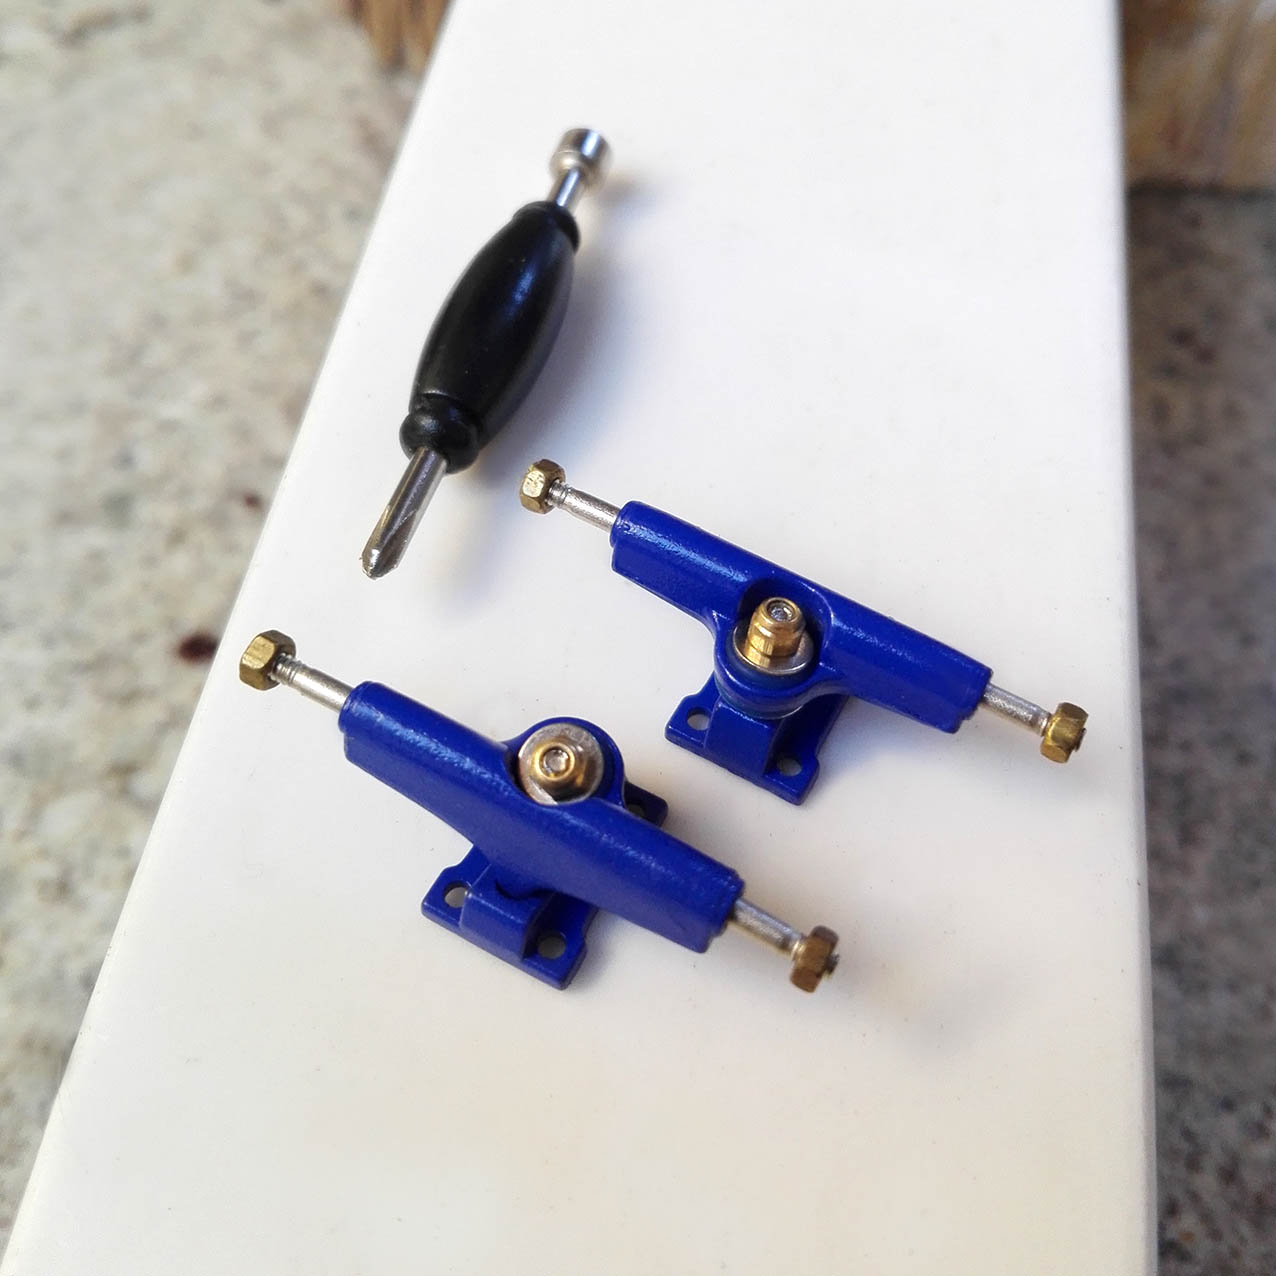 DARK BLUE TRUCKS 29MM – 9,00 € ($ 12,36 USD)